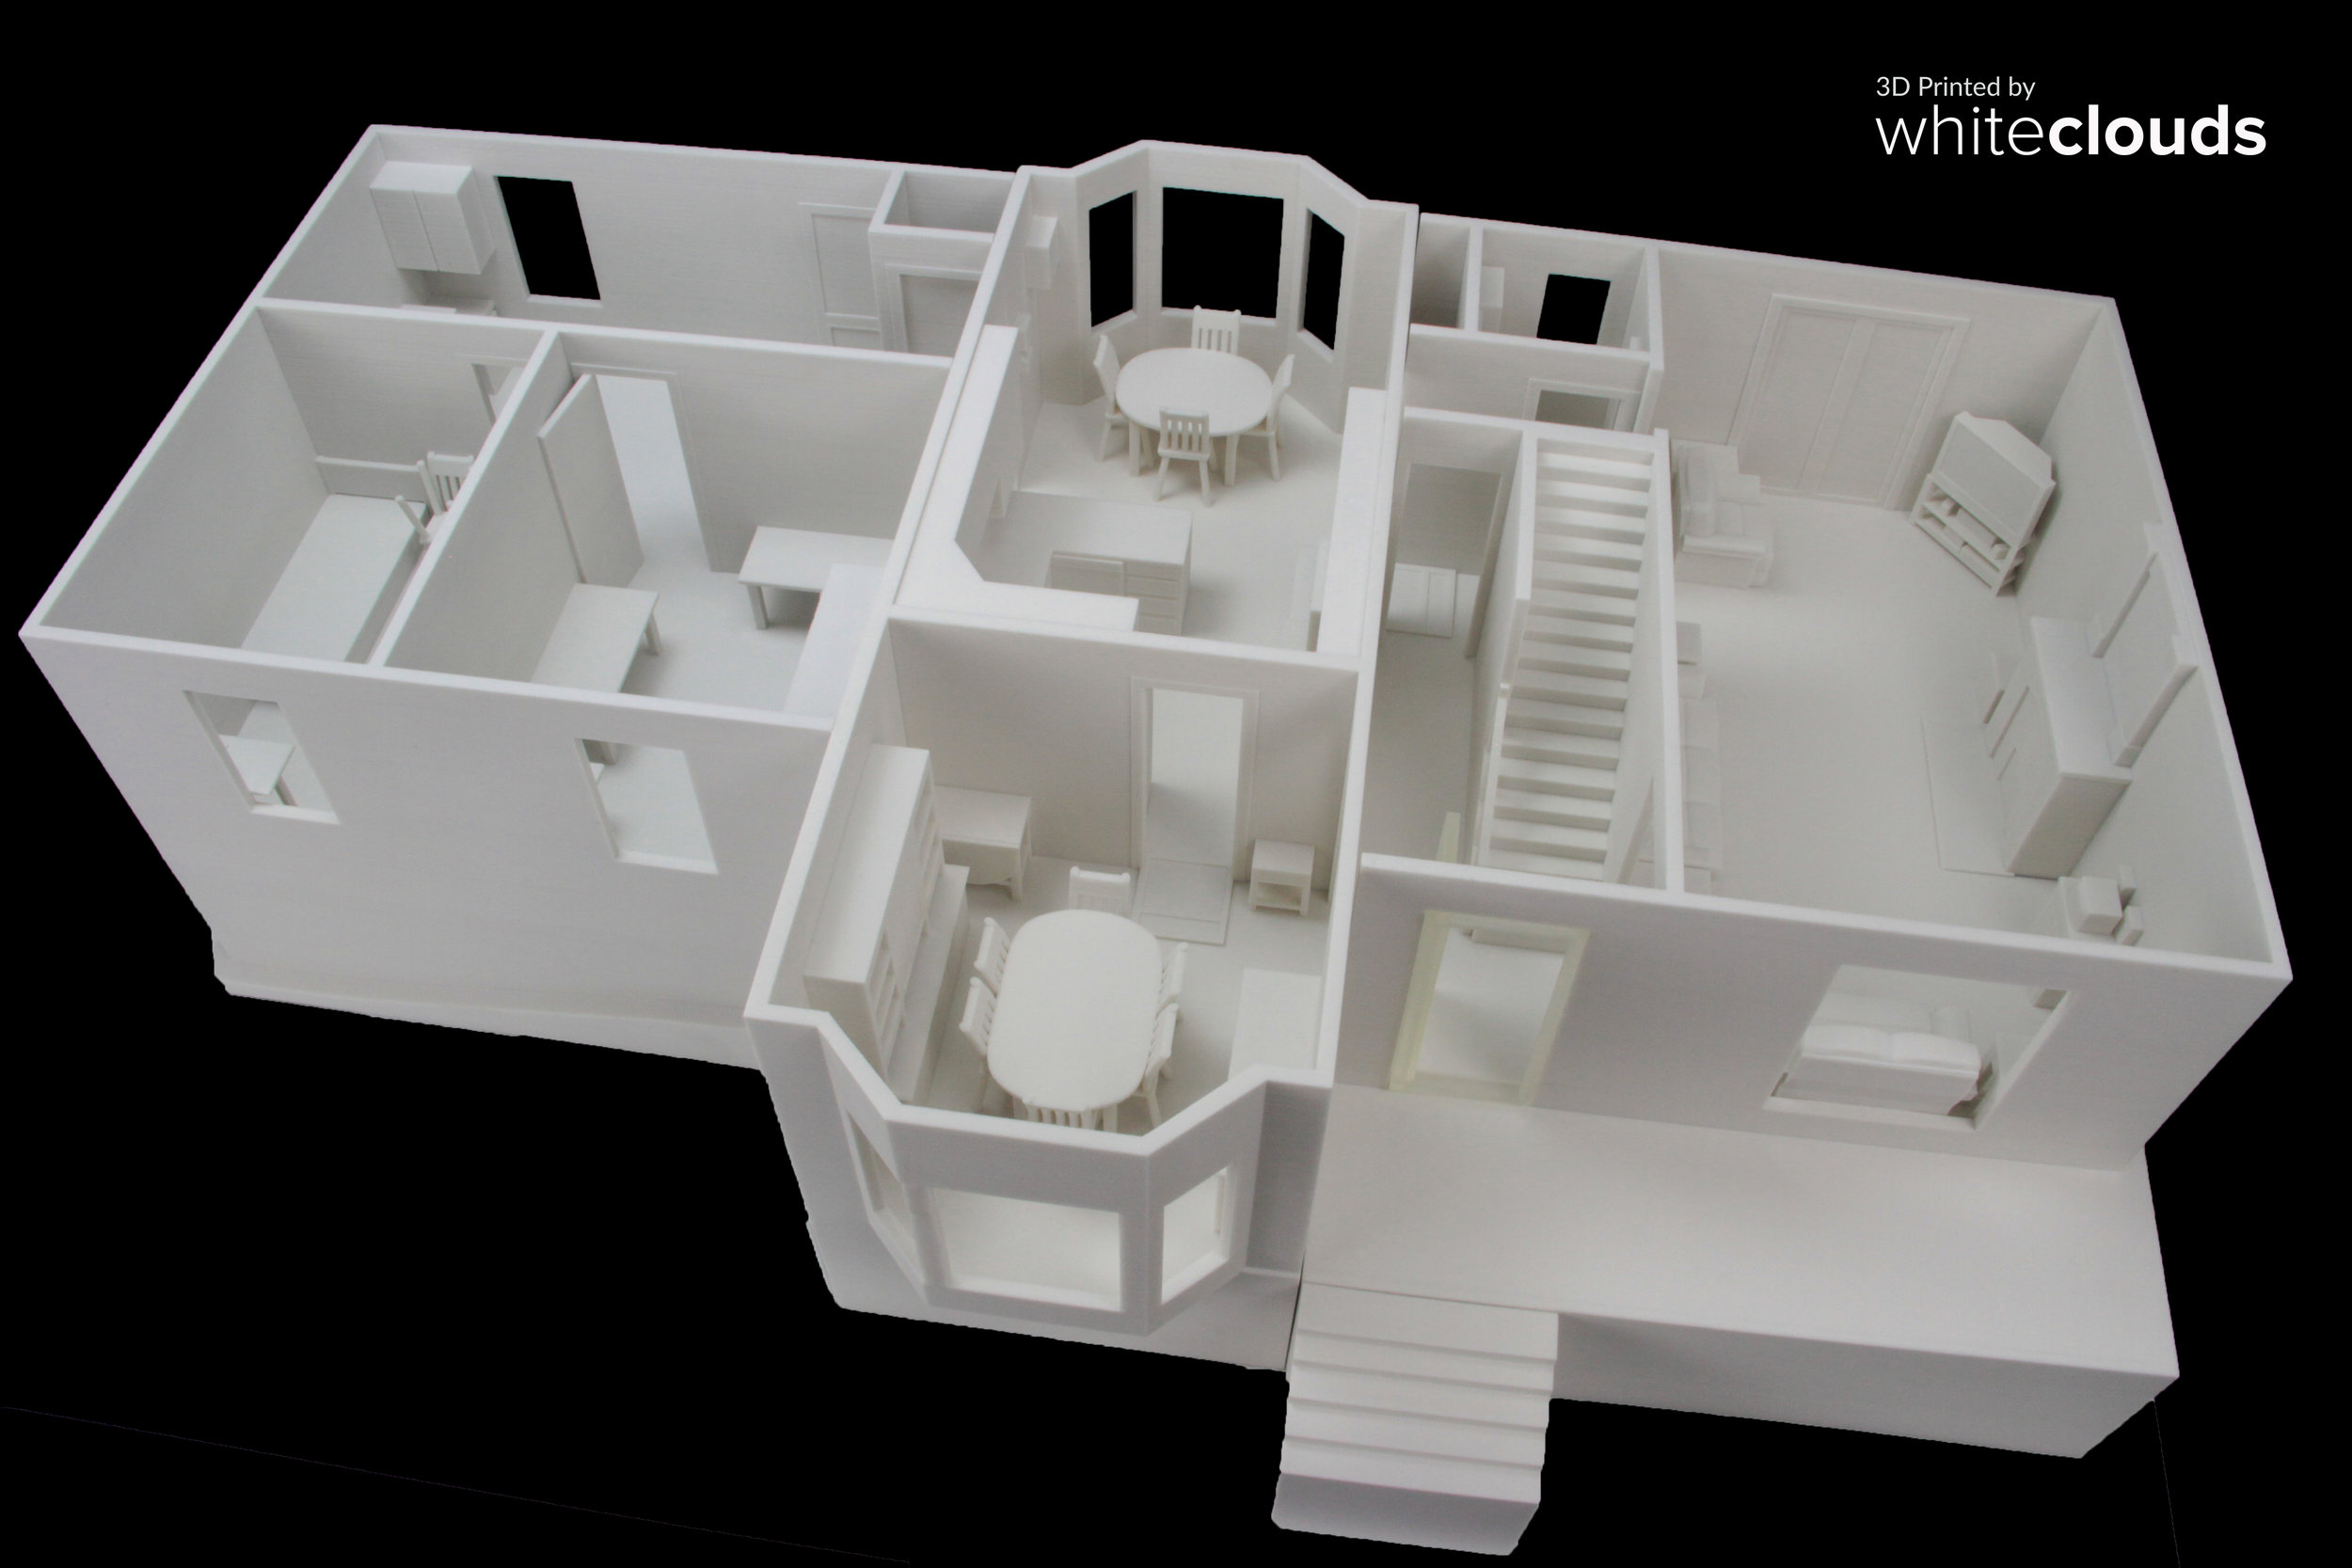 3D-Printed-WhiteClouds-Trial-House-Architecture-Trial-House-Website-1.jpg